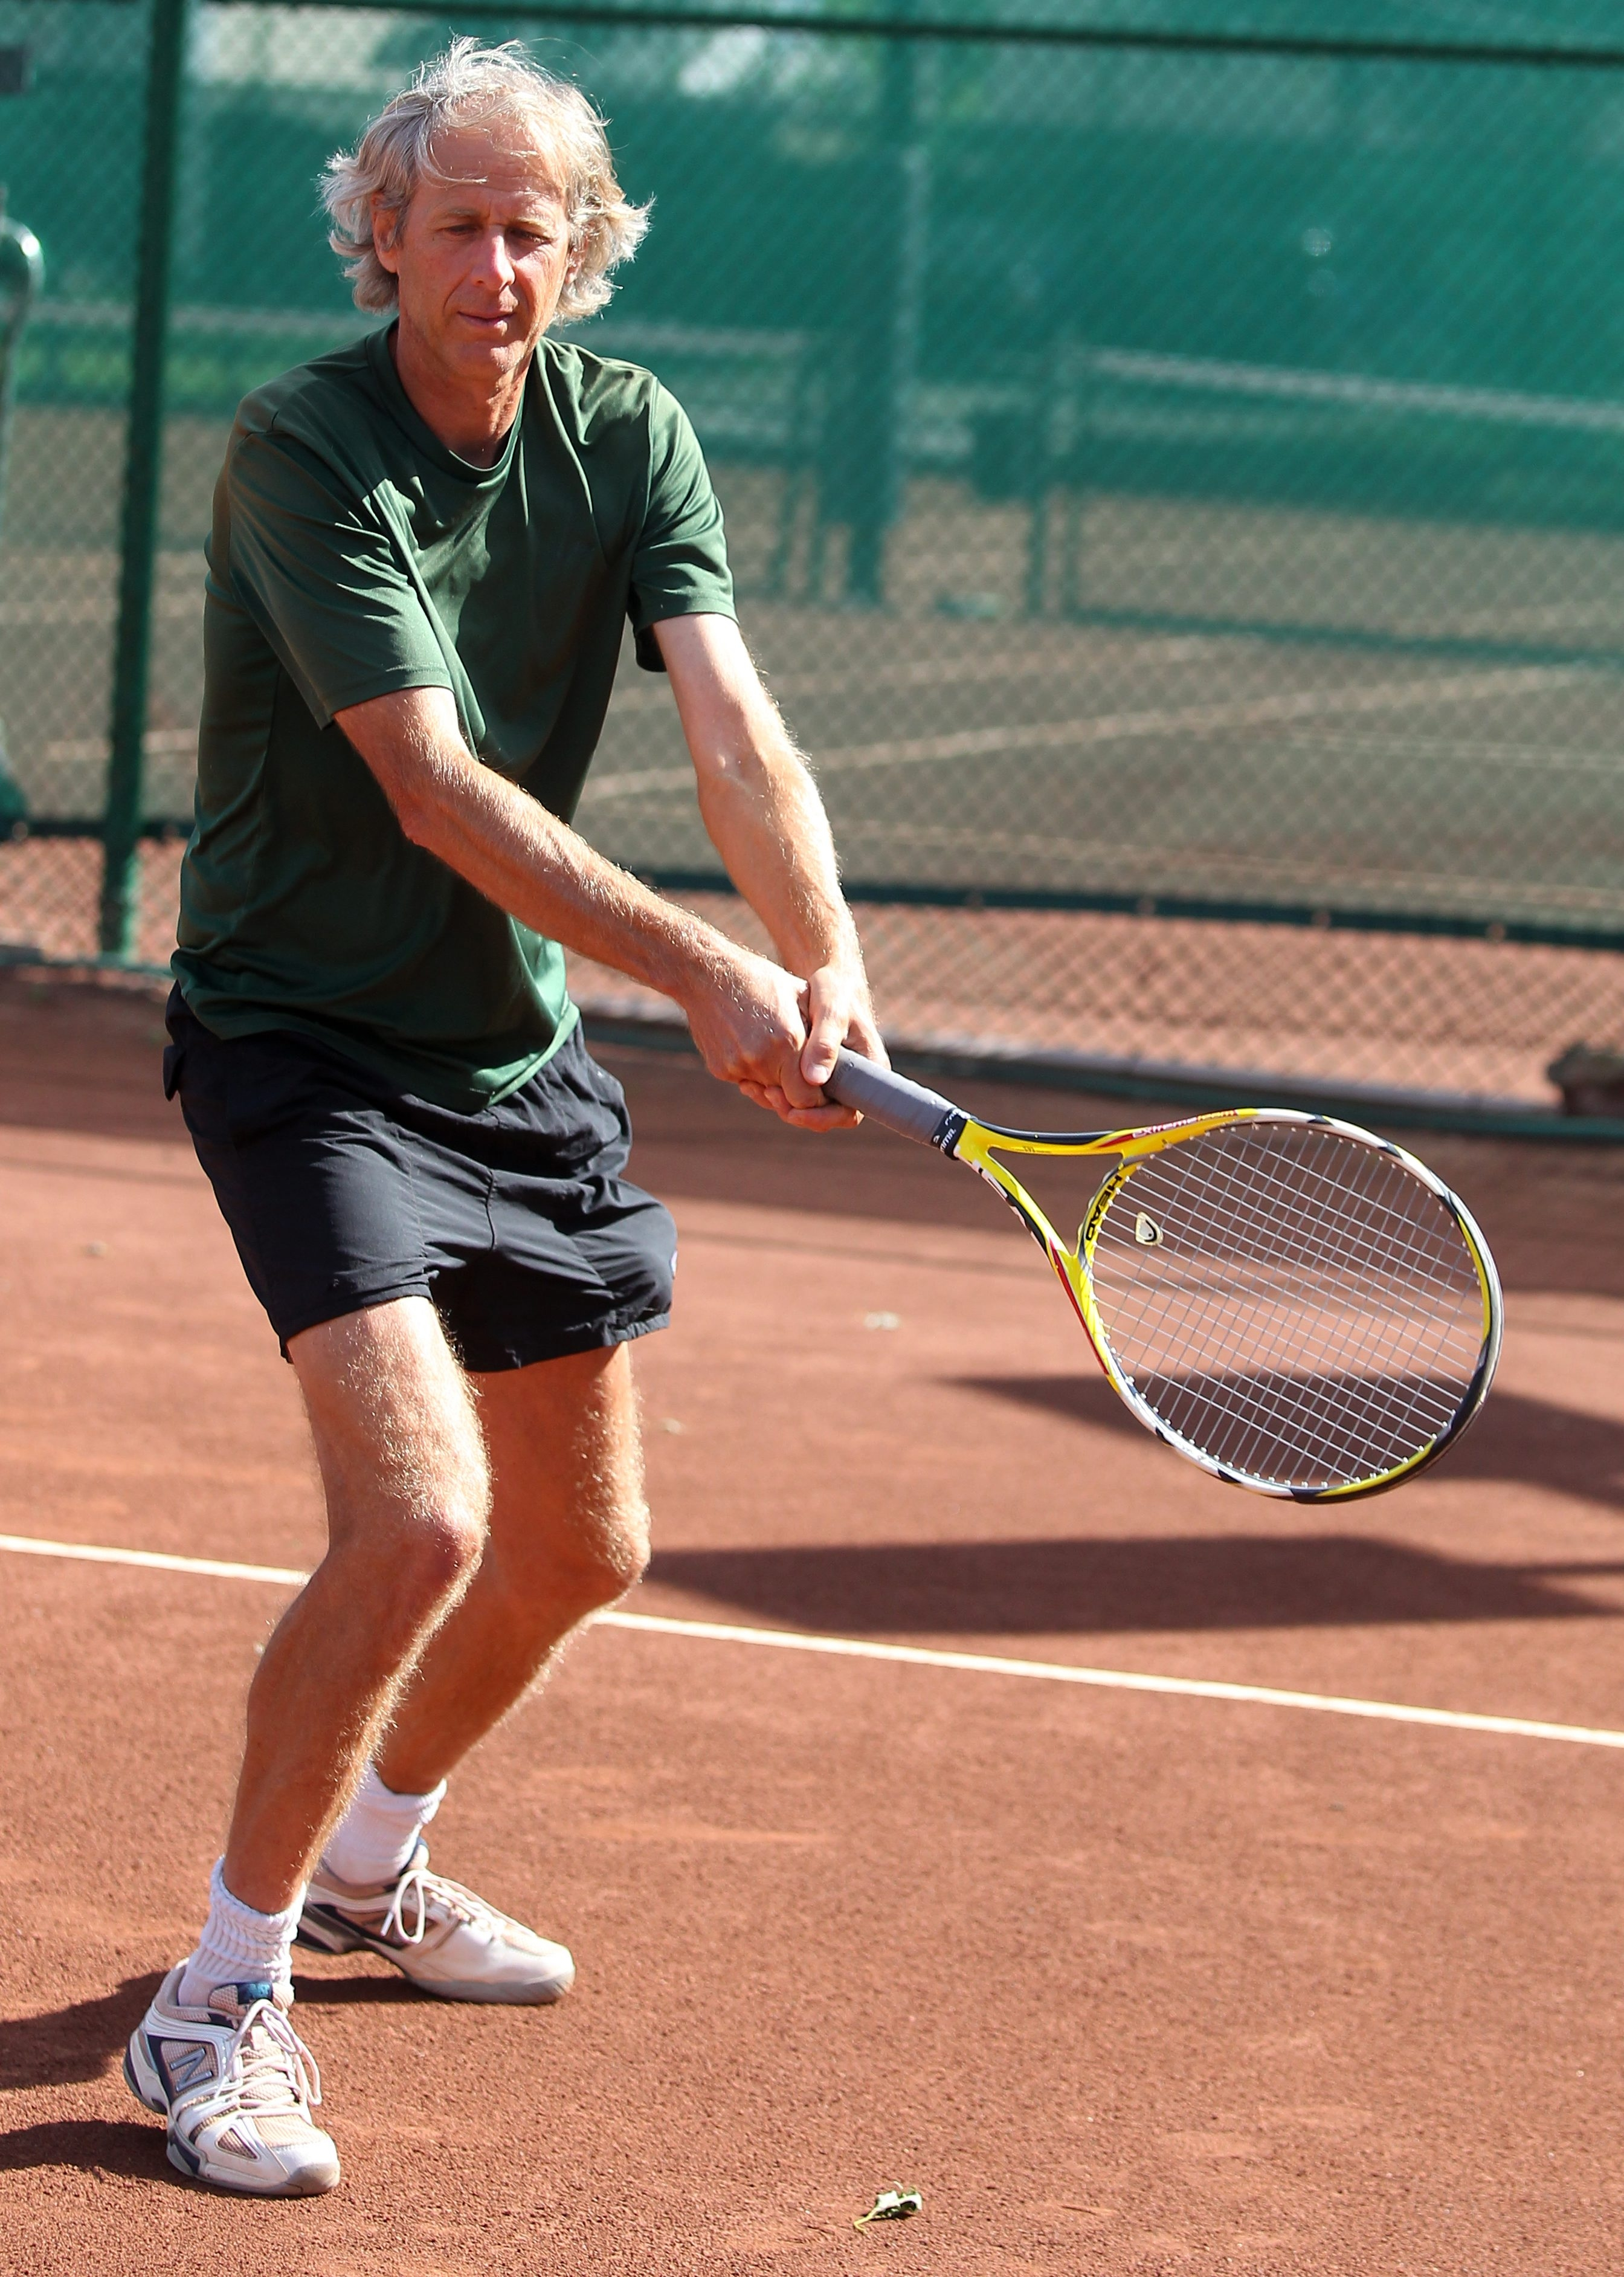 Dave Magavern demonstrates his unusual backhand grip for tennis that has served him well in regional competition.